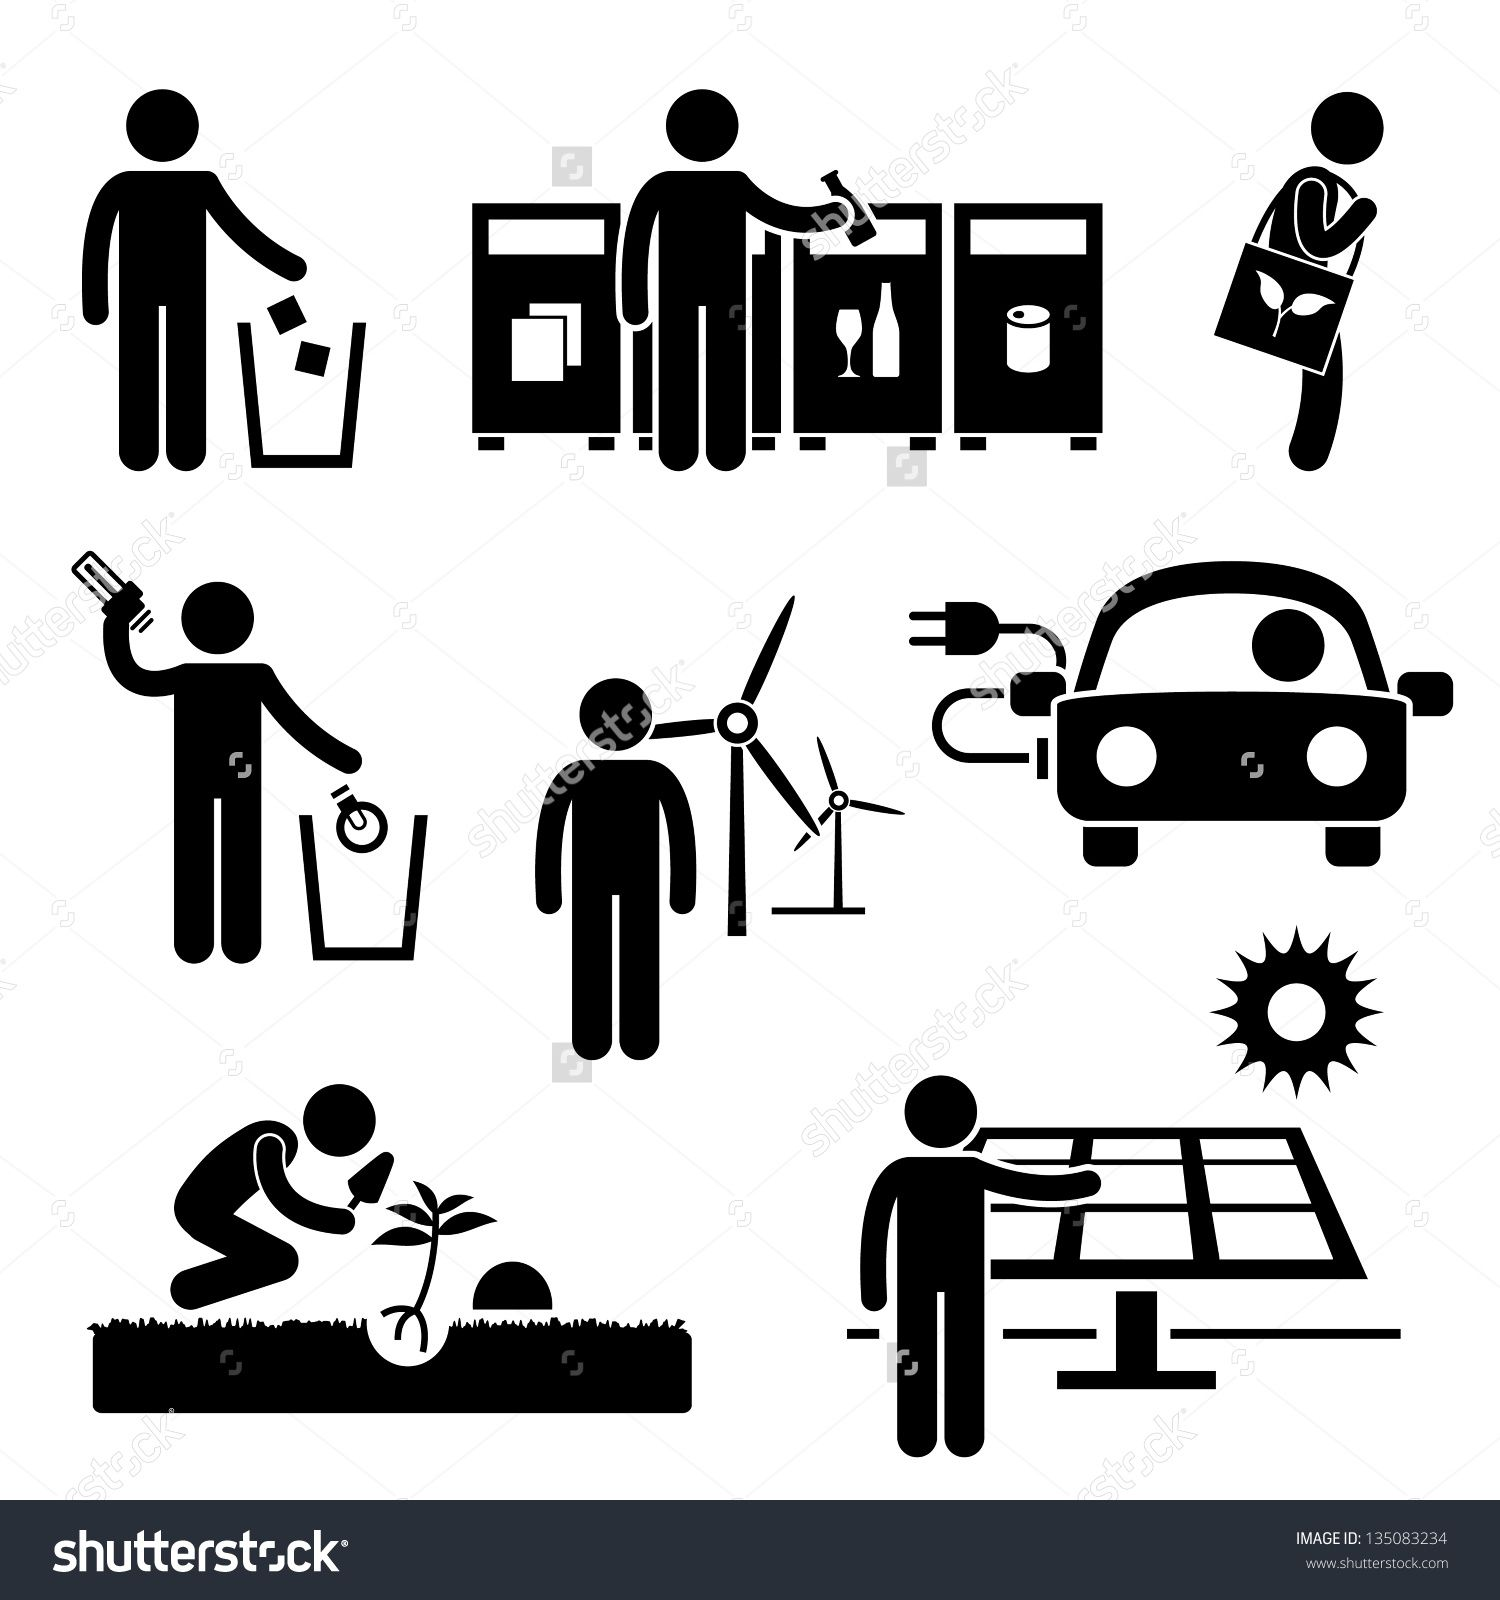 Https Image Shutterstock Com Z Stock Vector Man People Recycle Green Environment Energy Saving Stick Figure Pictogram Icon Pictogram Stick Figures Recycling